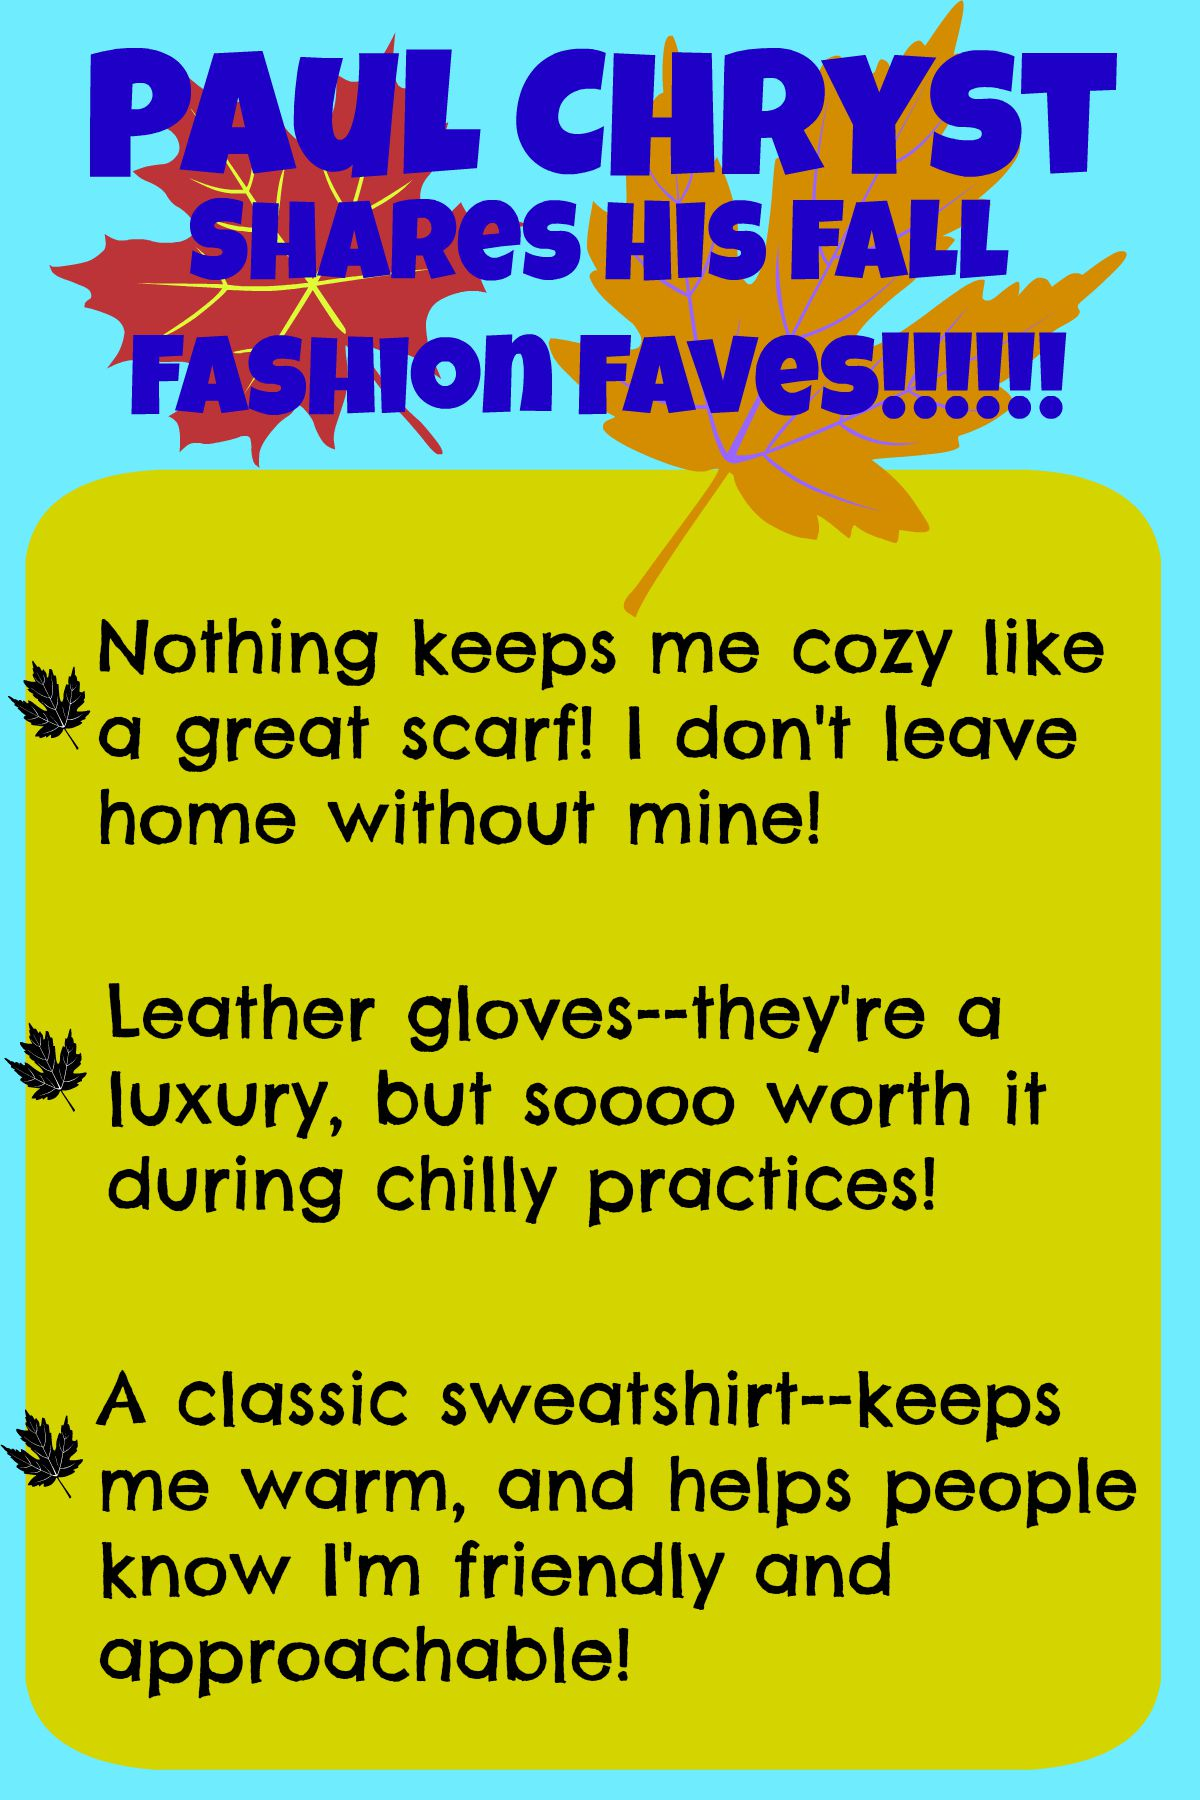 Fall Fashion Faves by Chryst